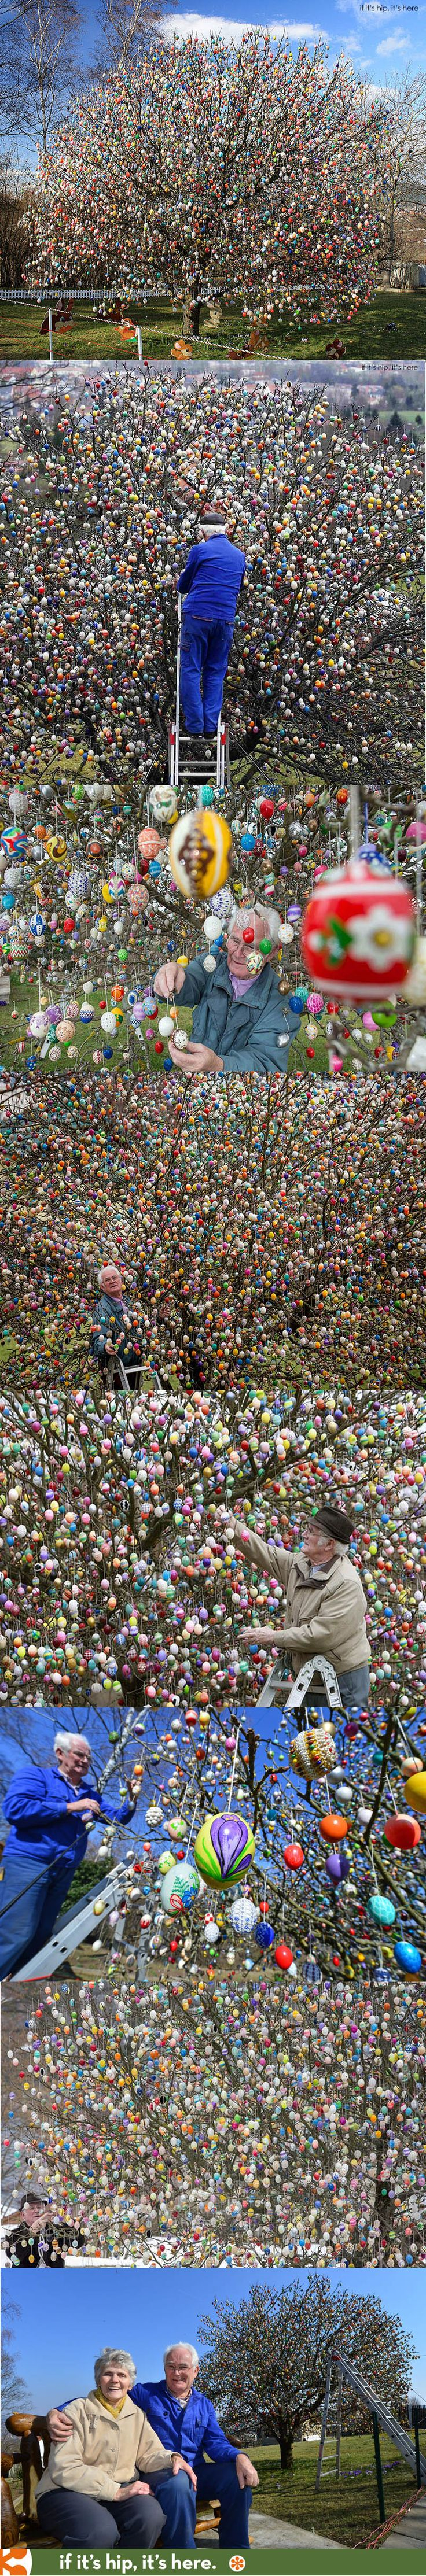 The Easter Egg Tree. This German Couple has been decorating their apple tree with up to 10,000 eggs for the past 50 years. 2015 is the last year they will honor this old tradition. Learn more at http://www.ifitshipitshere.com/2015-volker-kraft-easter-egg-tree/